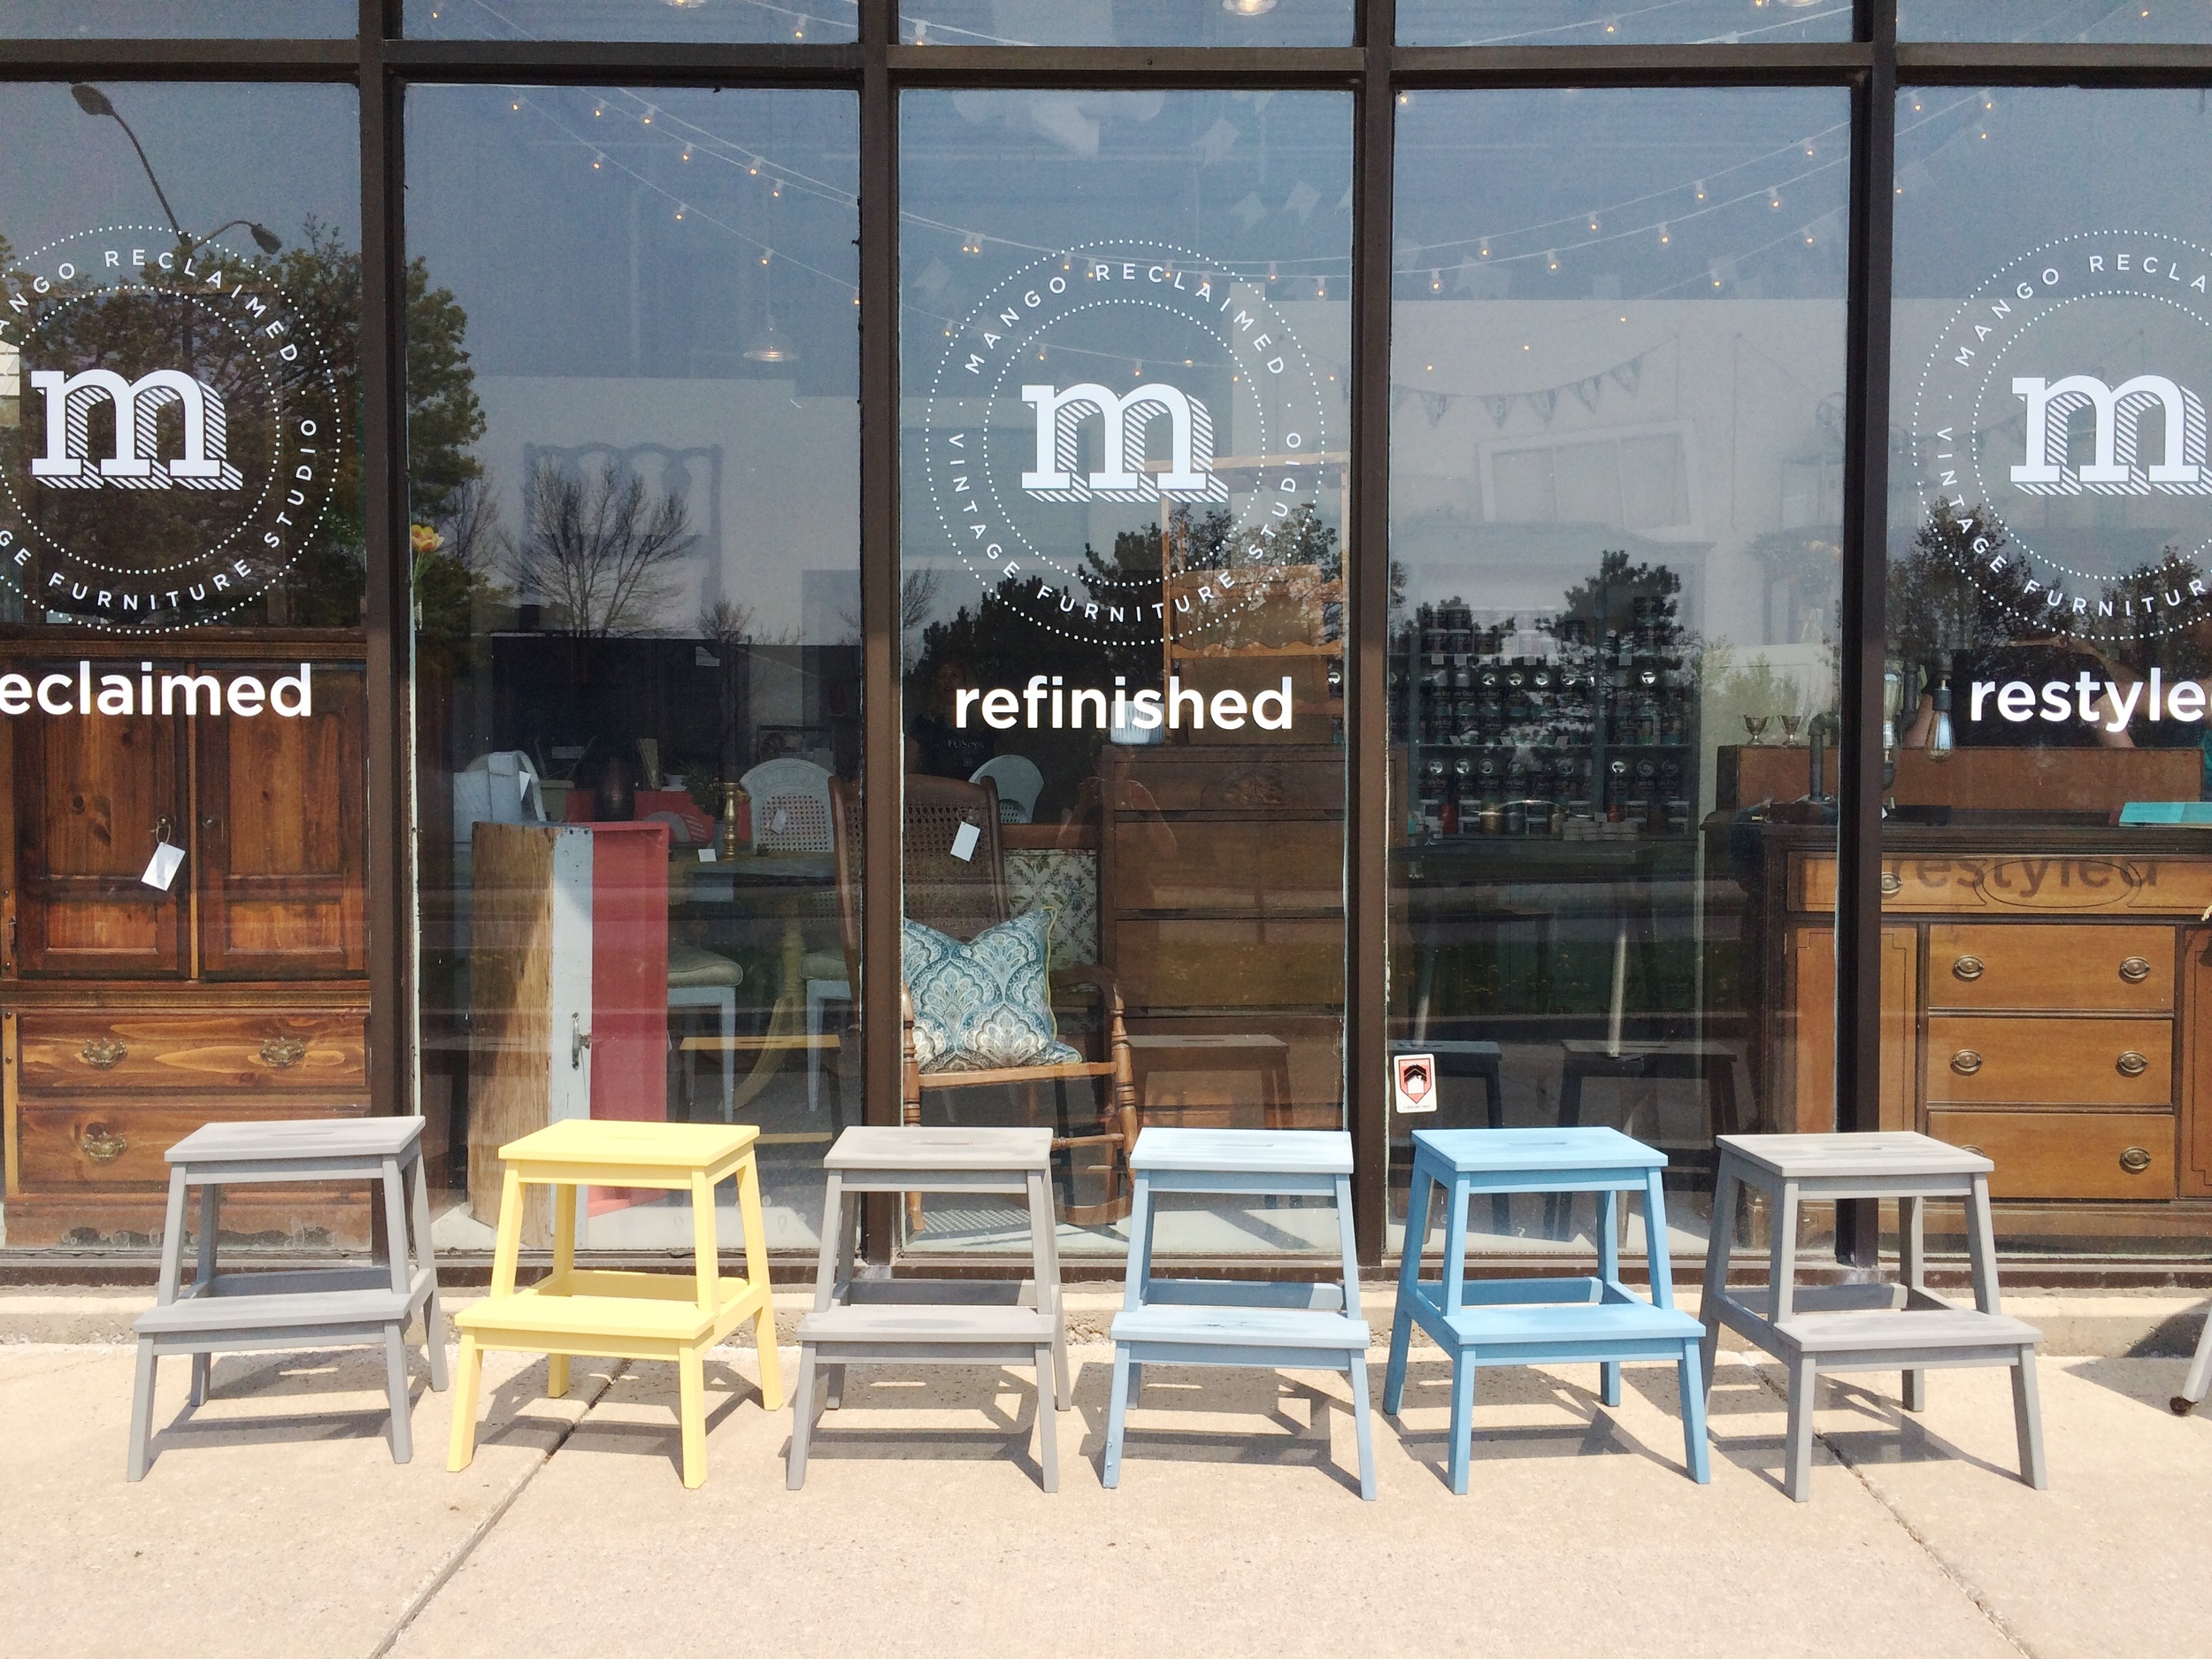 Milk paint a step stool workshop! Saturday August 20th, 11am - 3pm